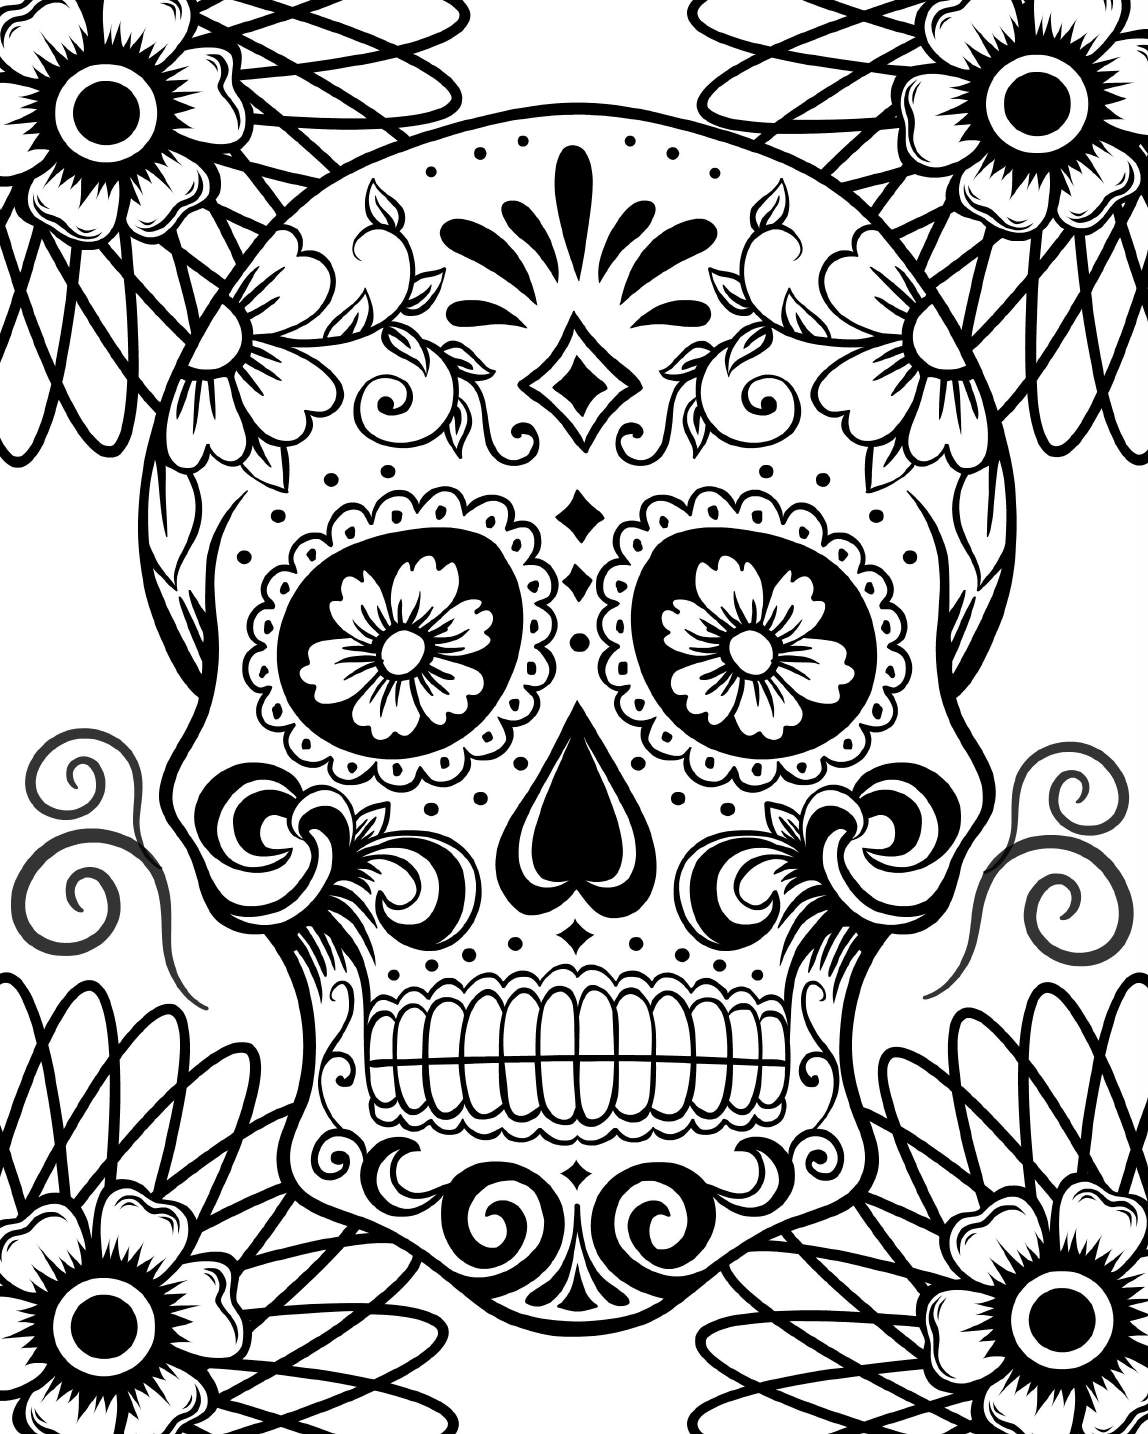 Day Of The Dead Sugar Skull Coloring Pages At Getcolorings